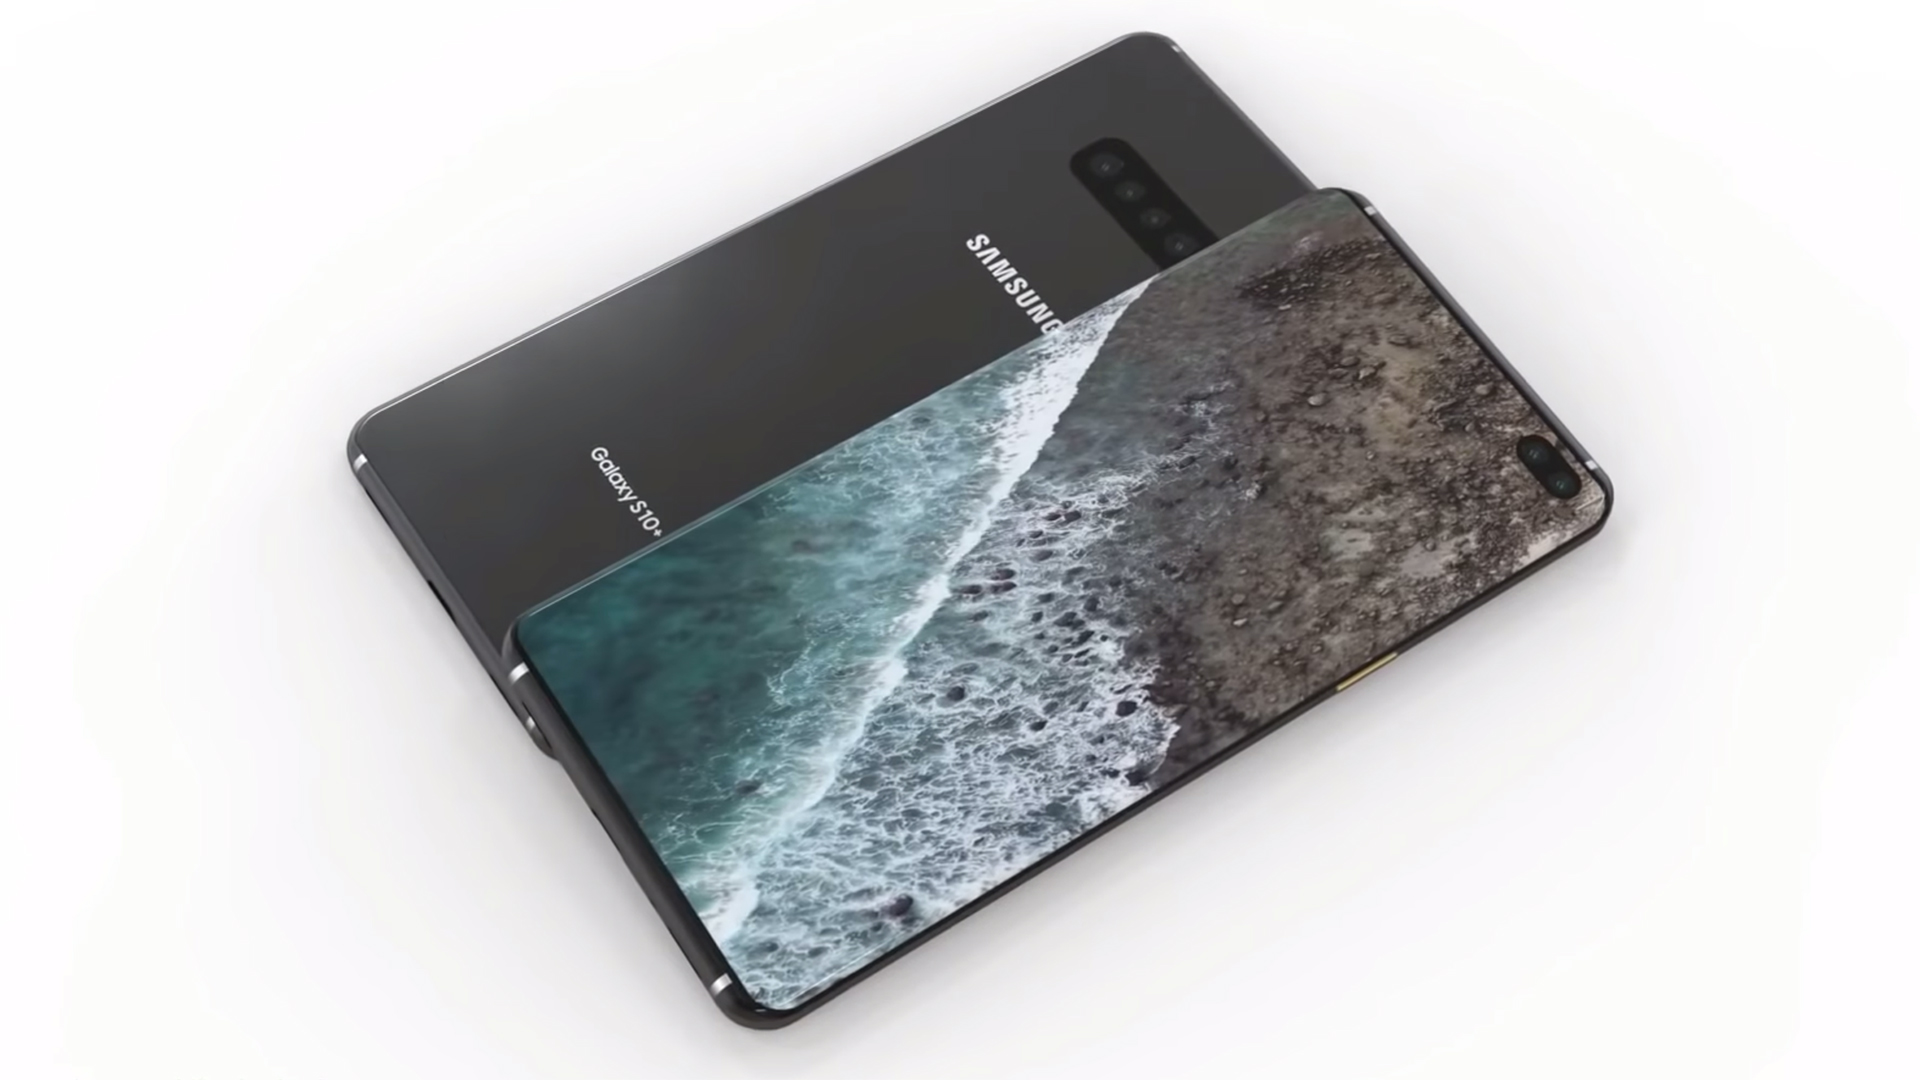 Samsung Galaxy S10 And S10 Plus Shown Off With Six Cameras In Stunning New Video T3